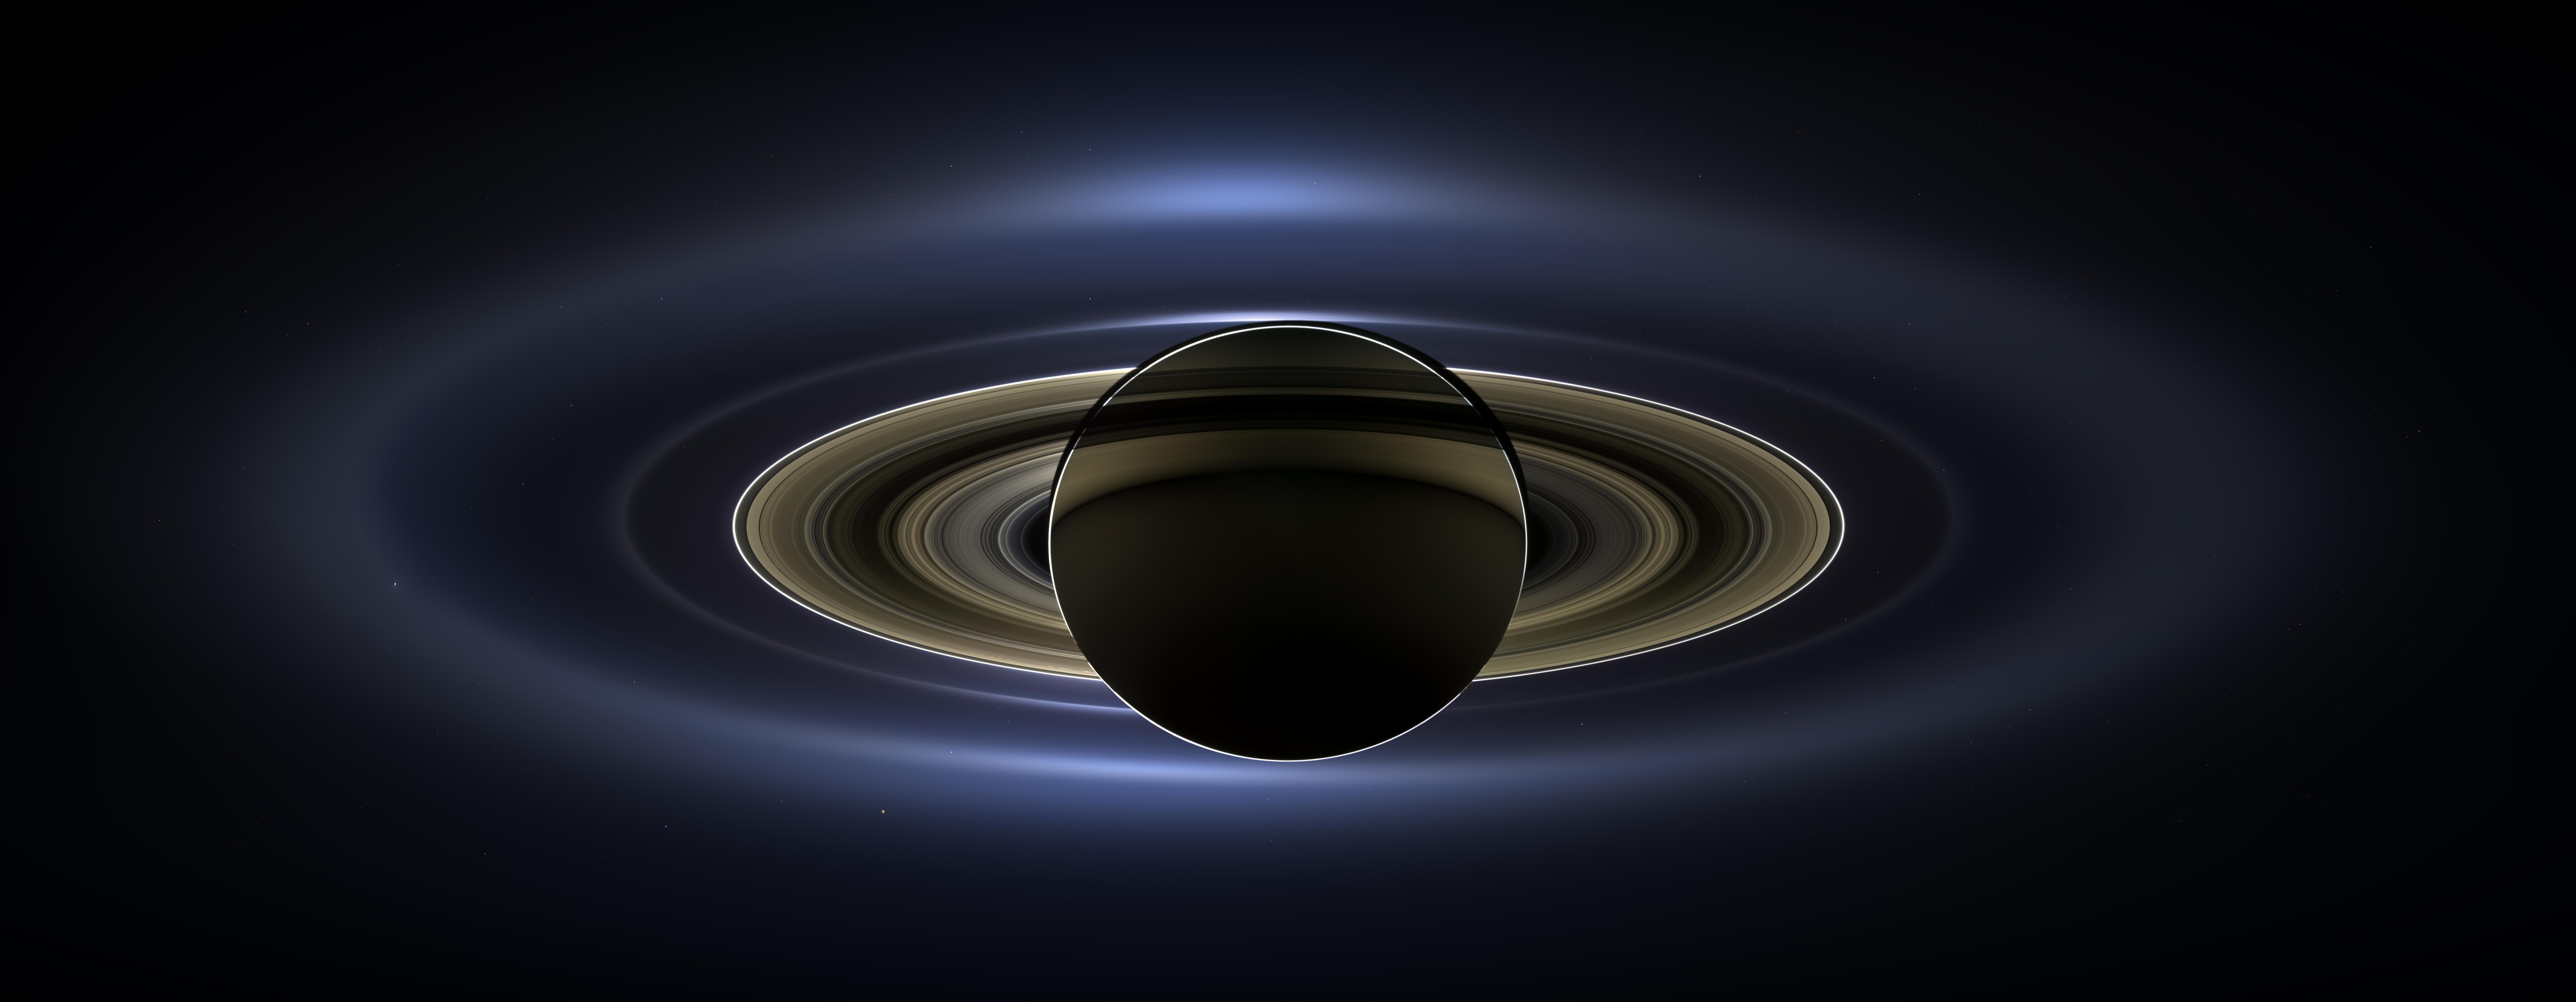 Cassini discovered a shower of ice and organic matter in the atmosphere of Saturn 9